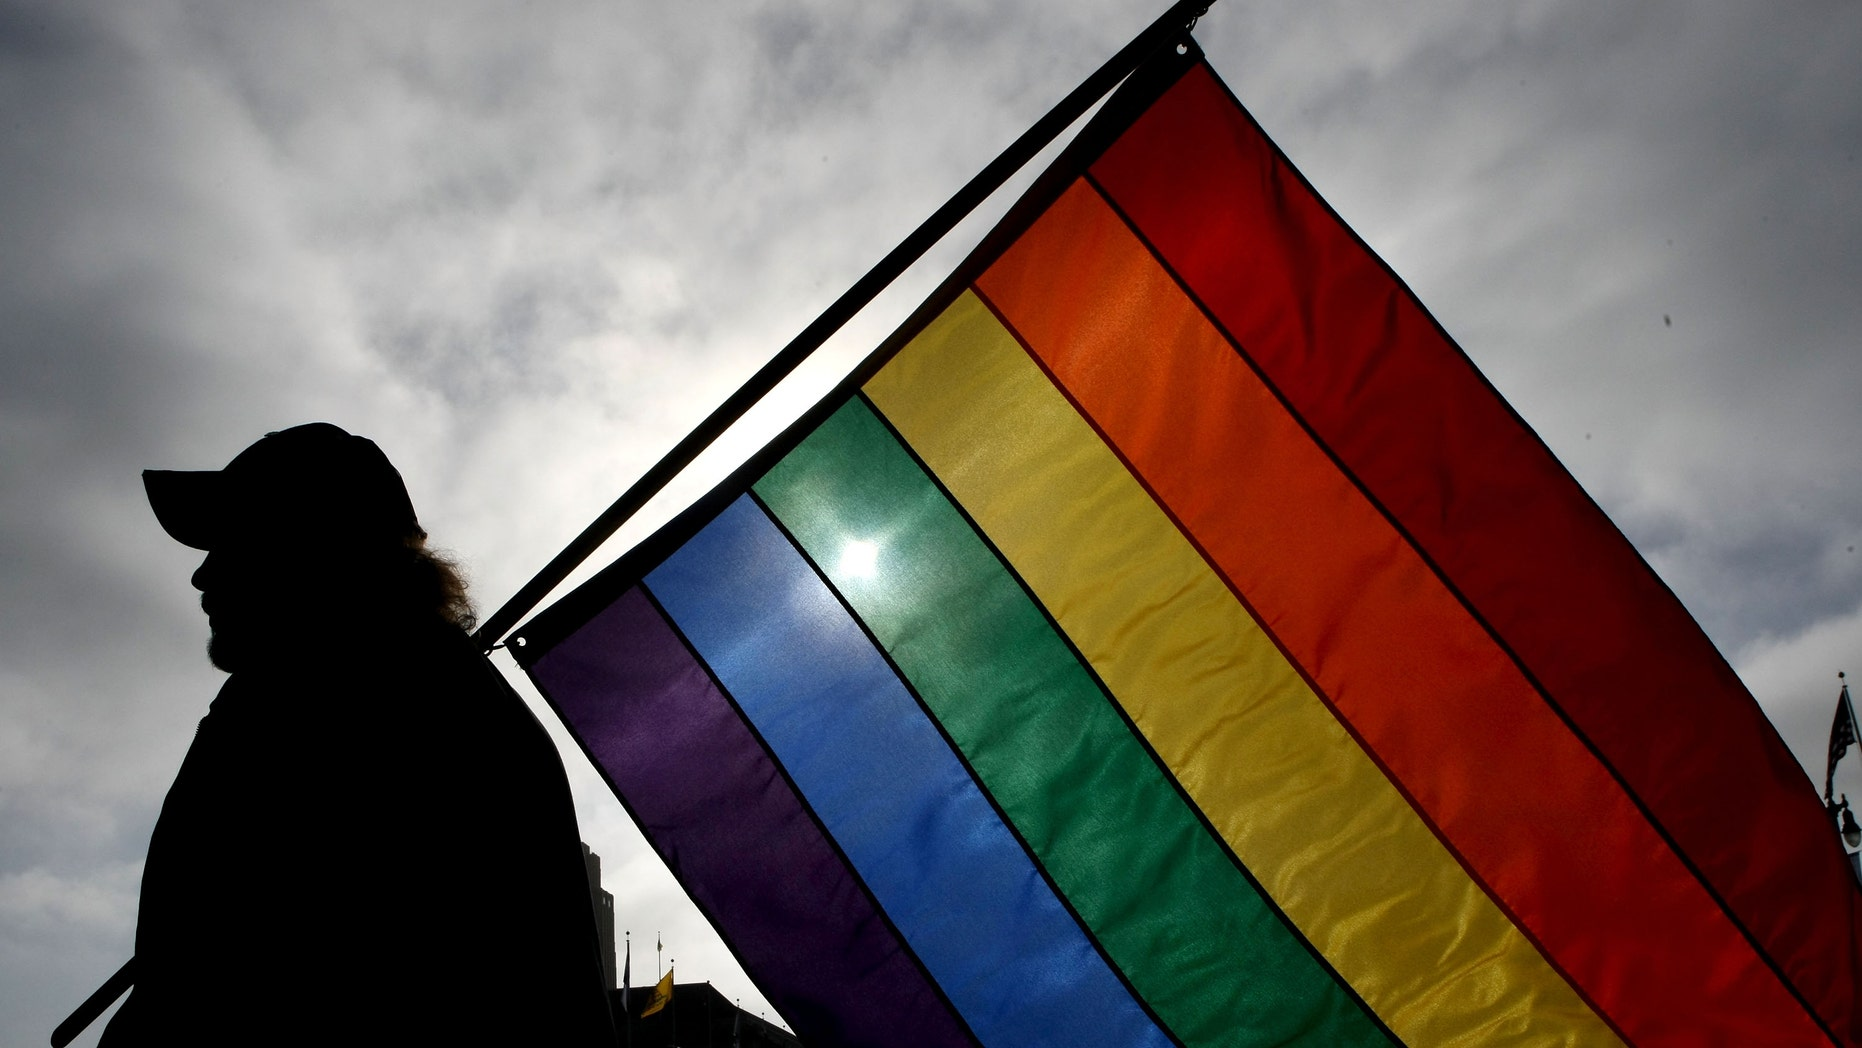 A bill making its way through Alabama's legislature would eliminate marriage licenses, a move indicating some Republicans in the conservative state may be retreating on culture wars as they grapple with how to deal with the legalization of gay marriages.